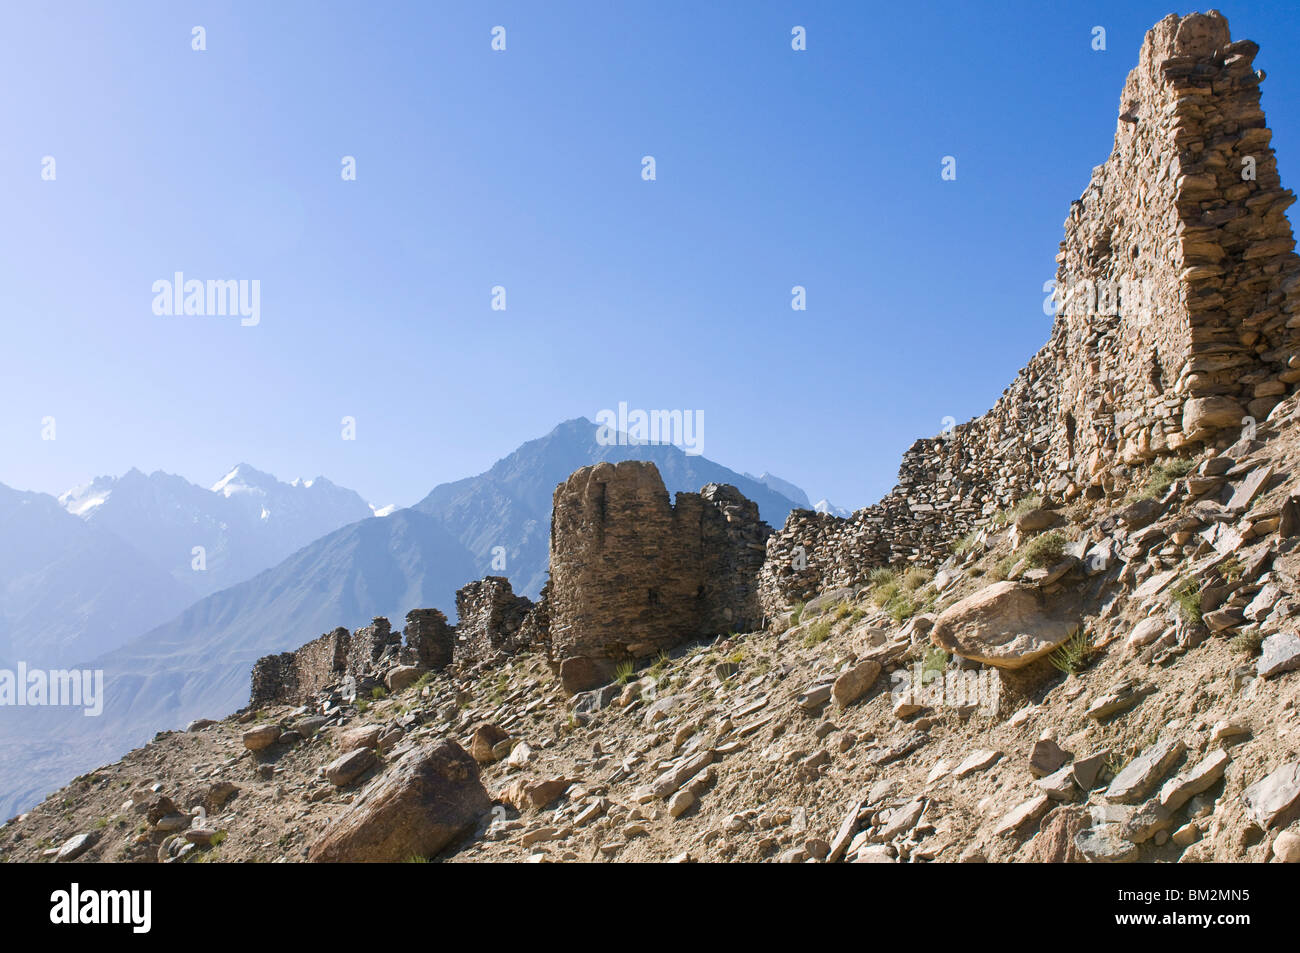 Yamchun fortress, Yamchun, Wakhan Valley, The Pamirs, Tajikistan - Stock Image